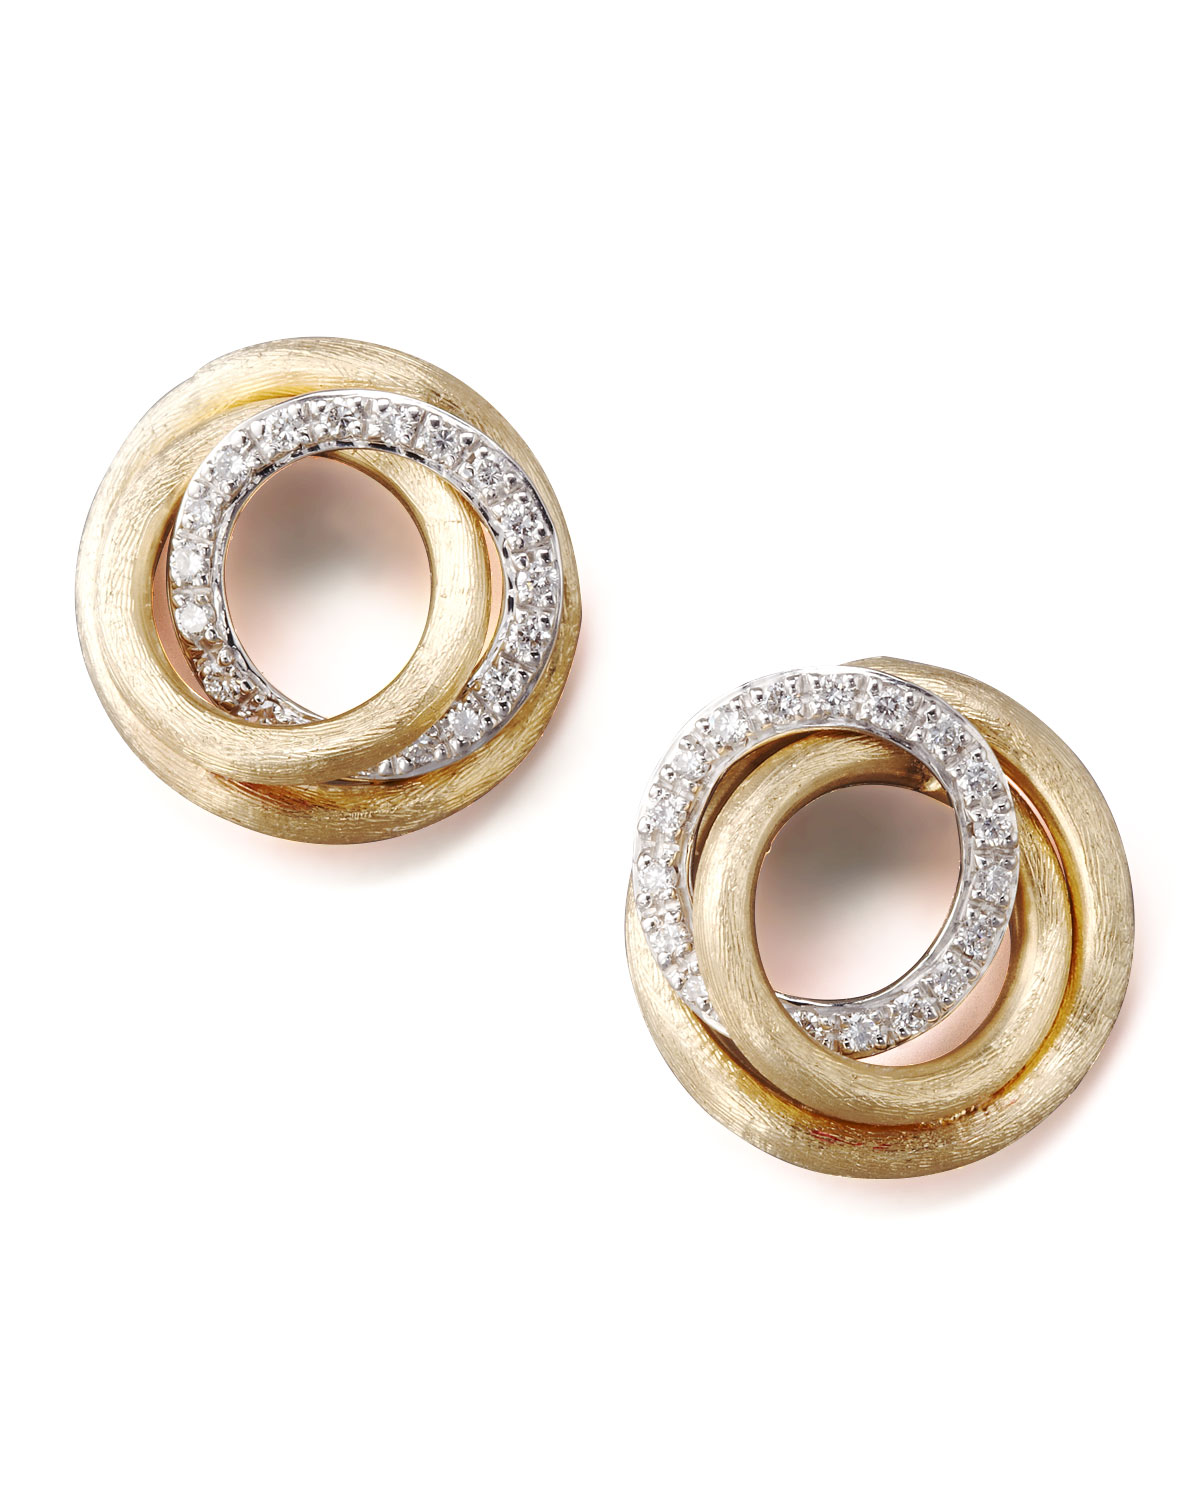 Marco Bicego Jaipur Diamond-Link Stud Earrings